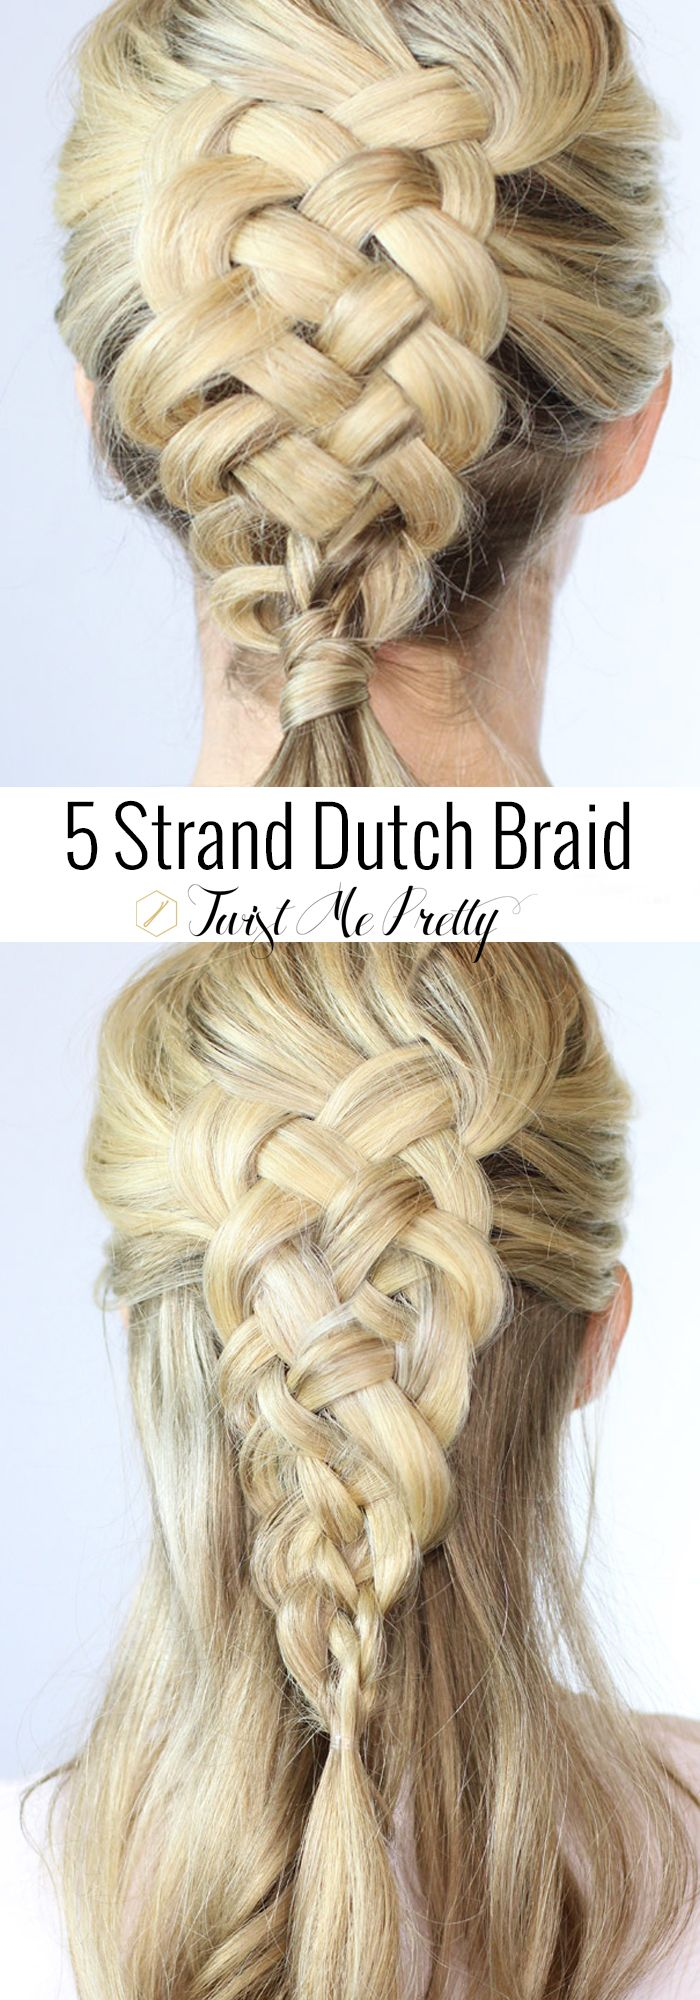 This girl makes learning this braid sooooo easy! A 5 strand dutch braid on yourself- eeek! Can't wait to wear it | Twist Me Pretty